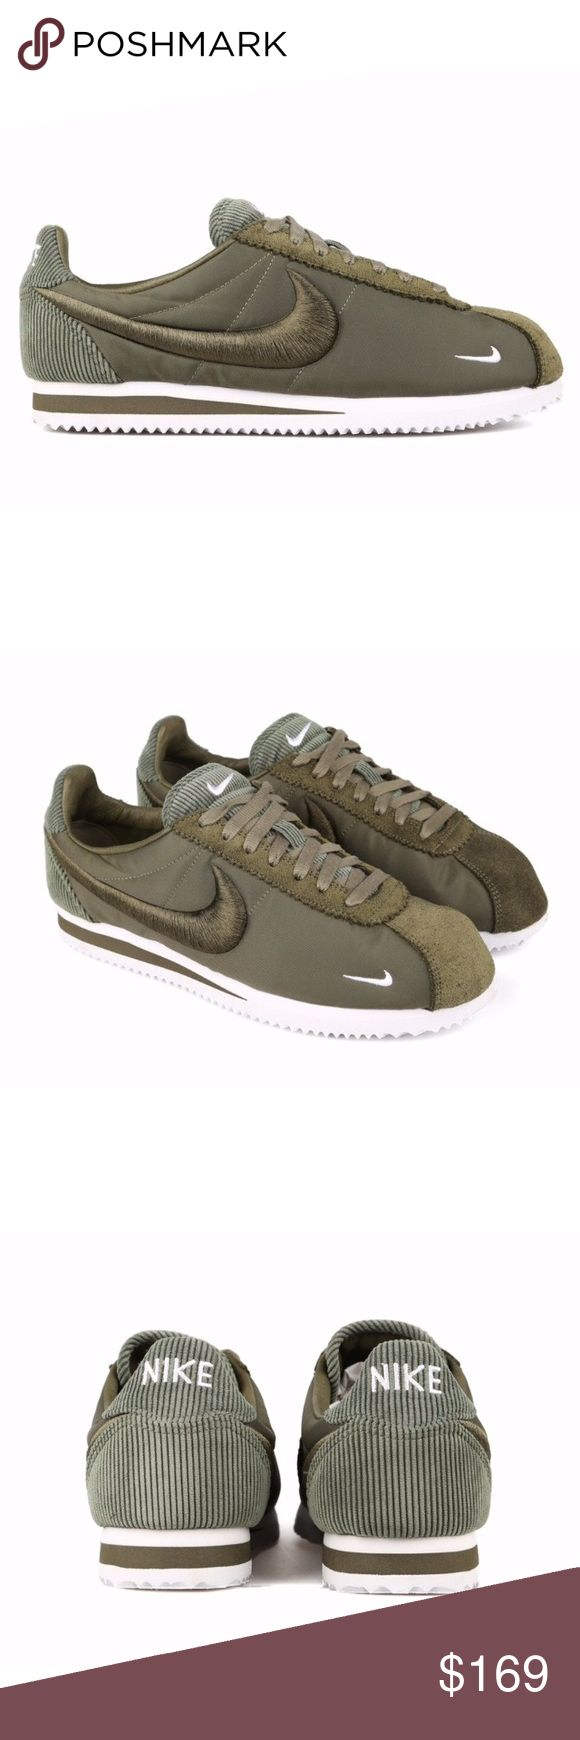 NIKE CLASSIC CORTEZ SP OLIVE GREEN WOMENS SIZE 8 Brand new without box. These are sold out everywhere. Nike Shoes Sneakers